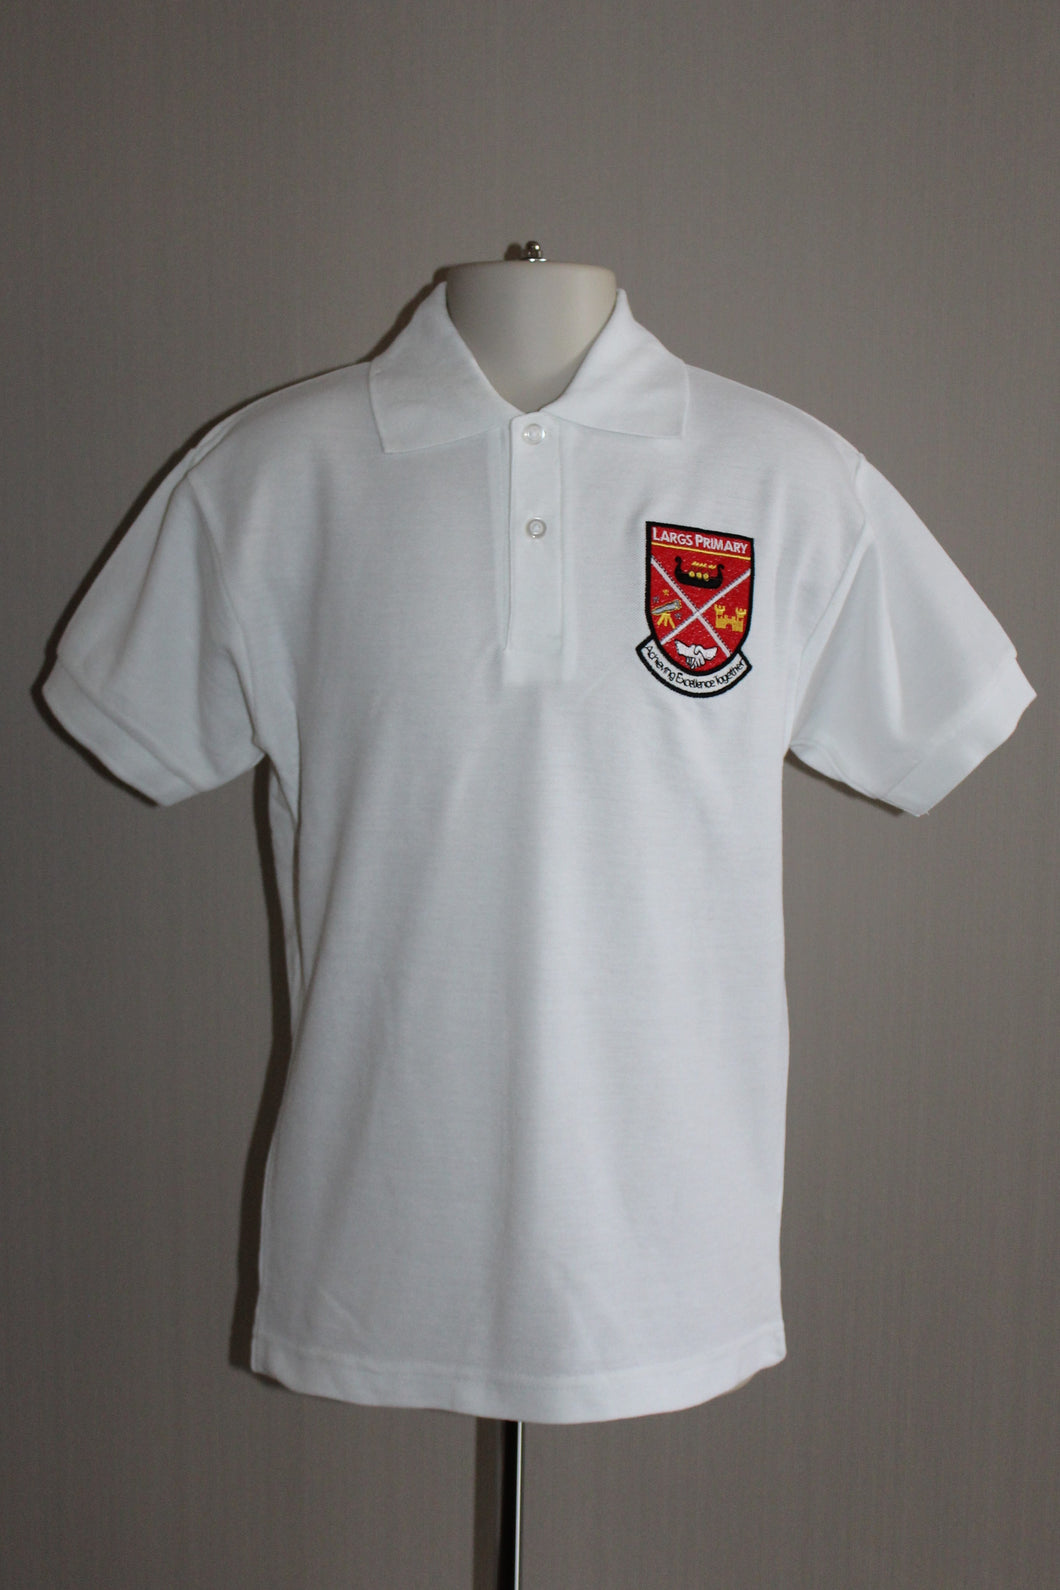 Largs Primary white polo shirt from Kinderland Largs, Largs Primary school uniform